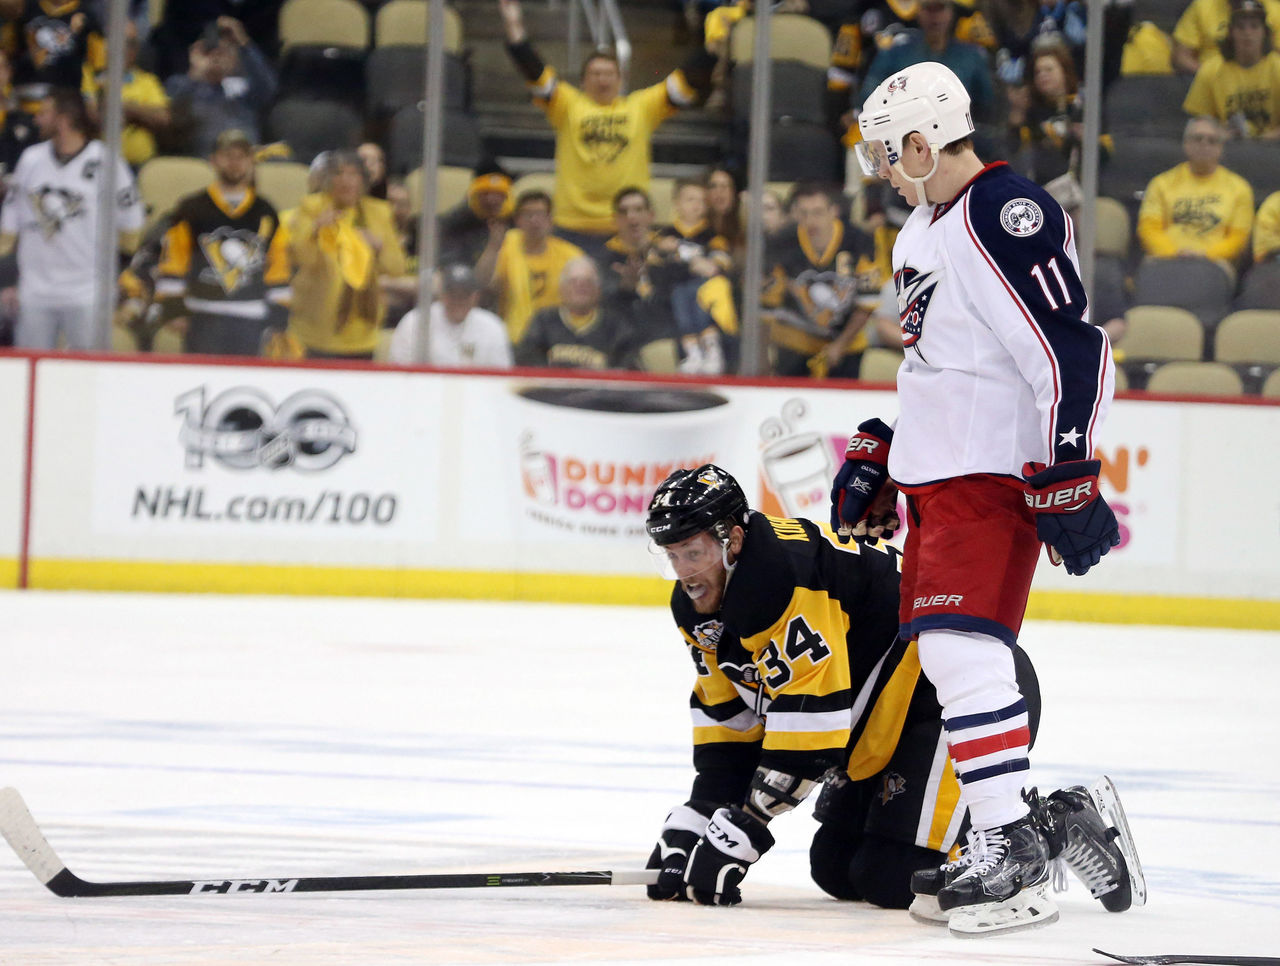 Watch: Blue Jackets' Calvert breaks stick on cross-check to ...